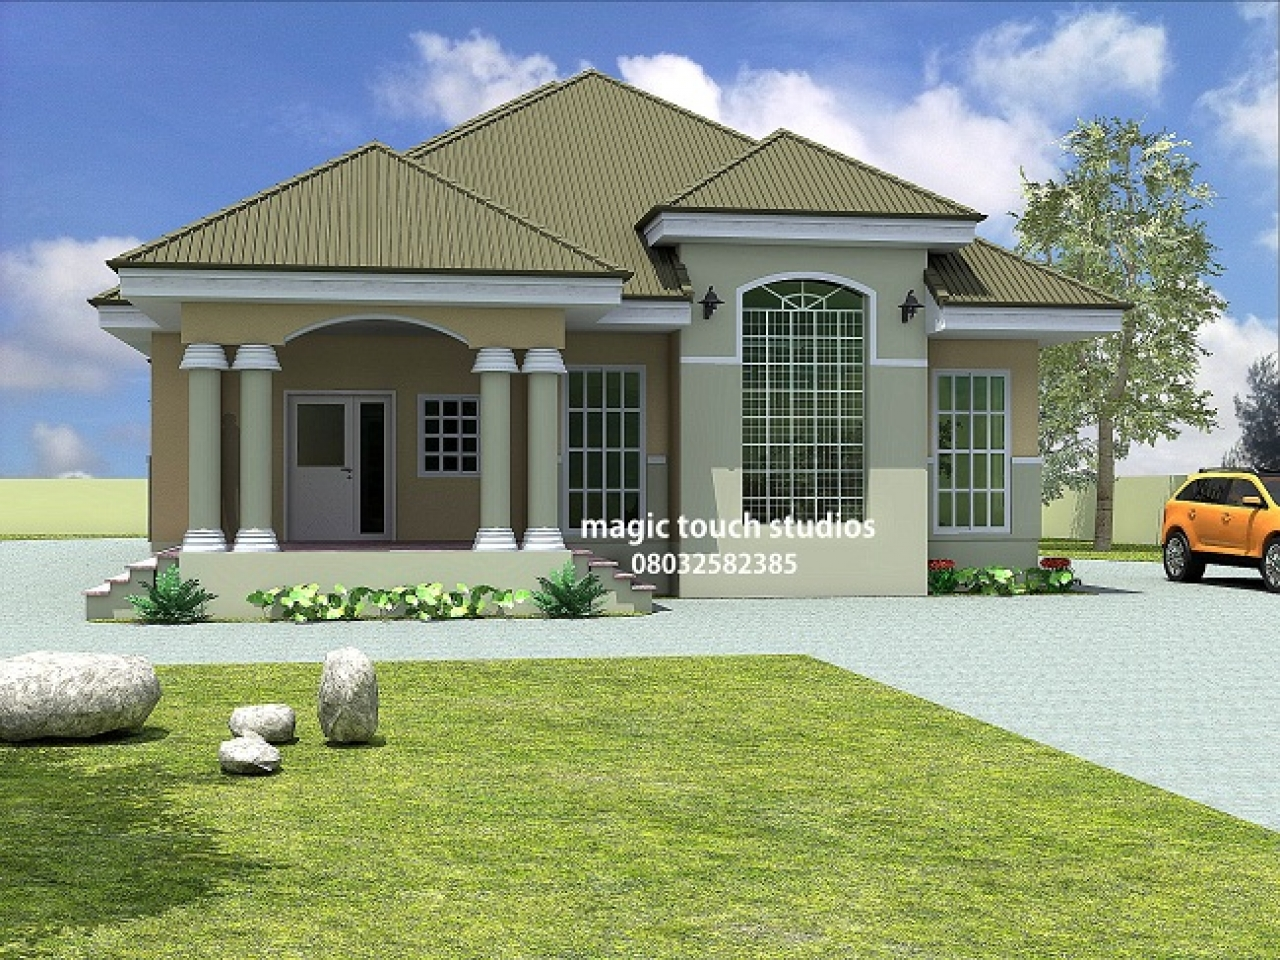 5 bedroom bungalow house plan in nigeria 5 bedroom floor for 5 bedroom cottage house plans